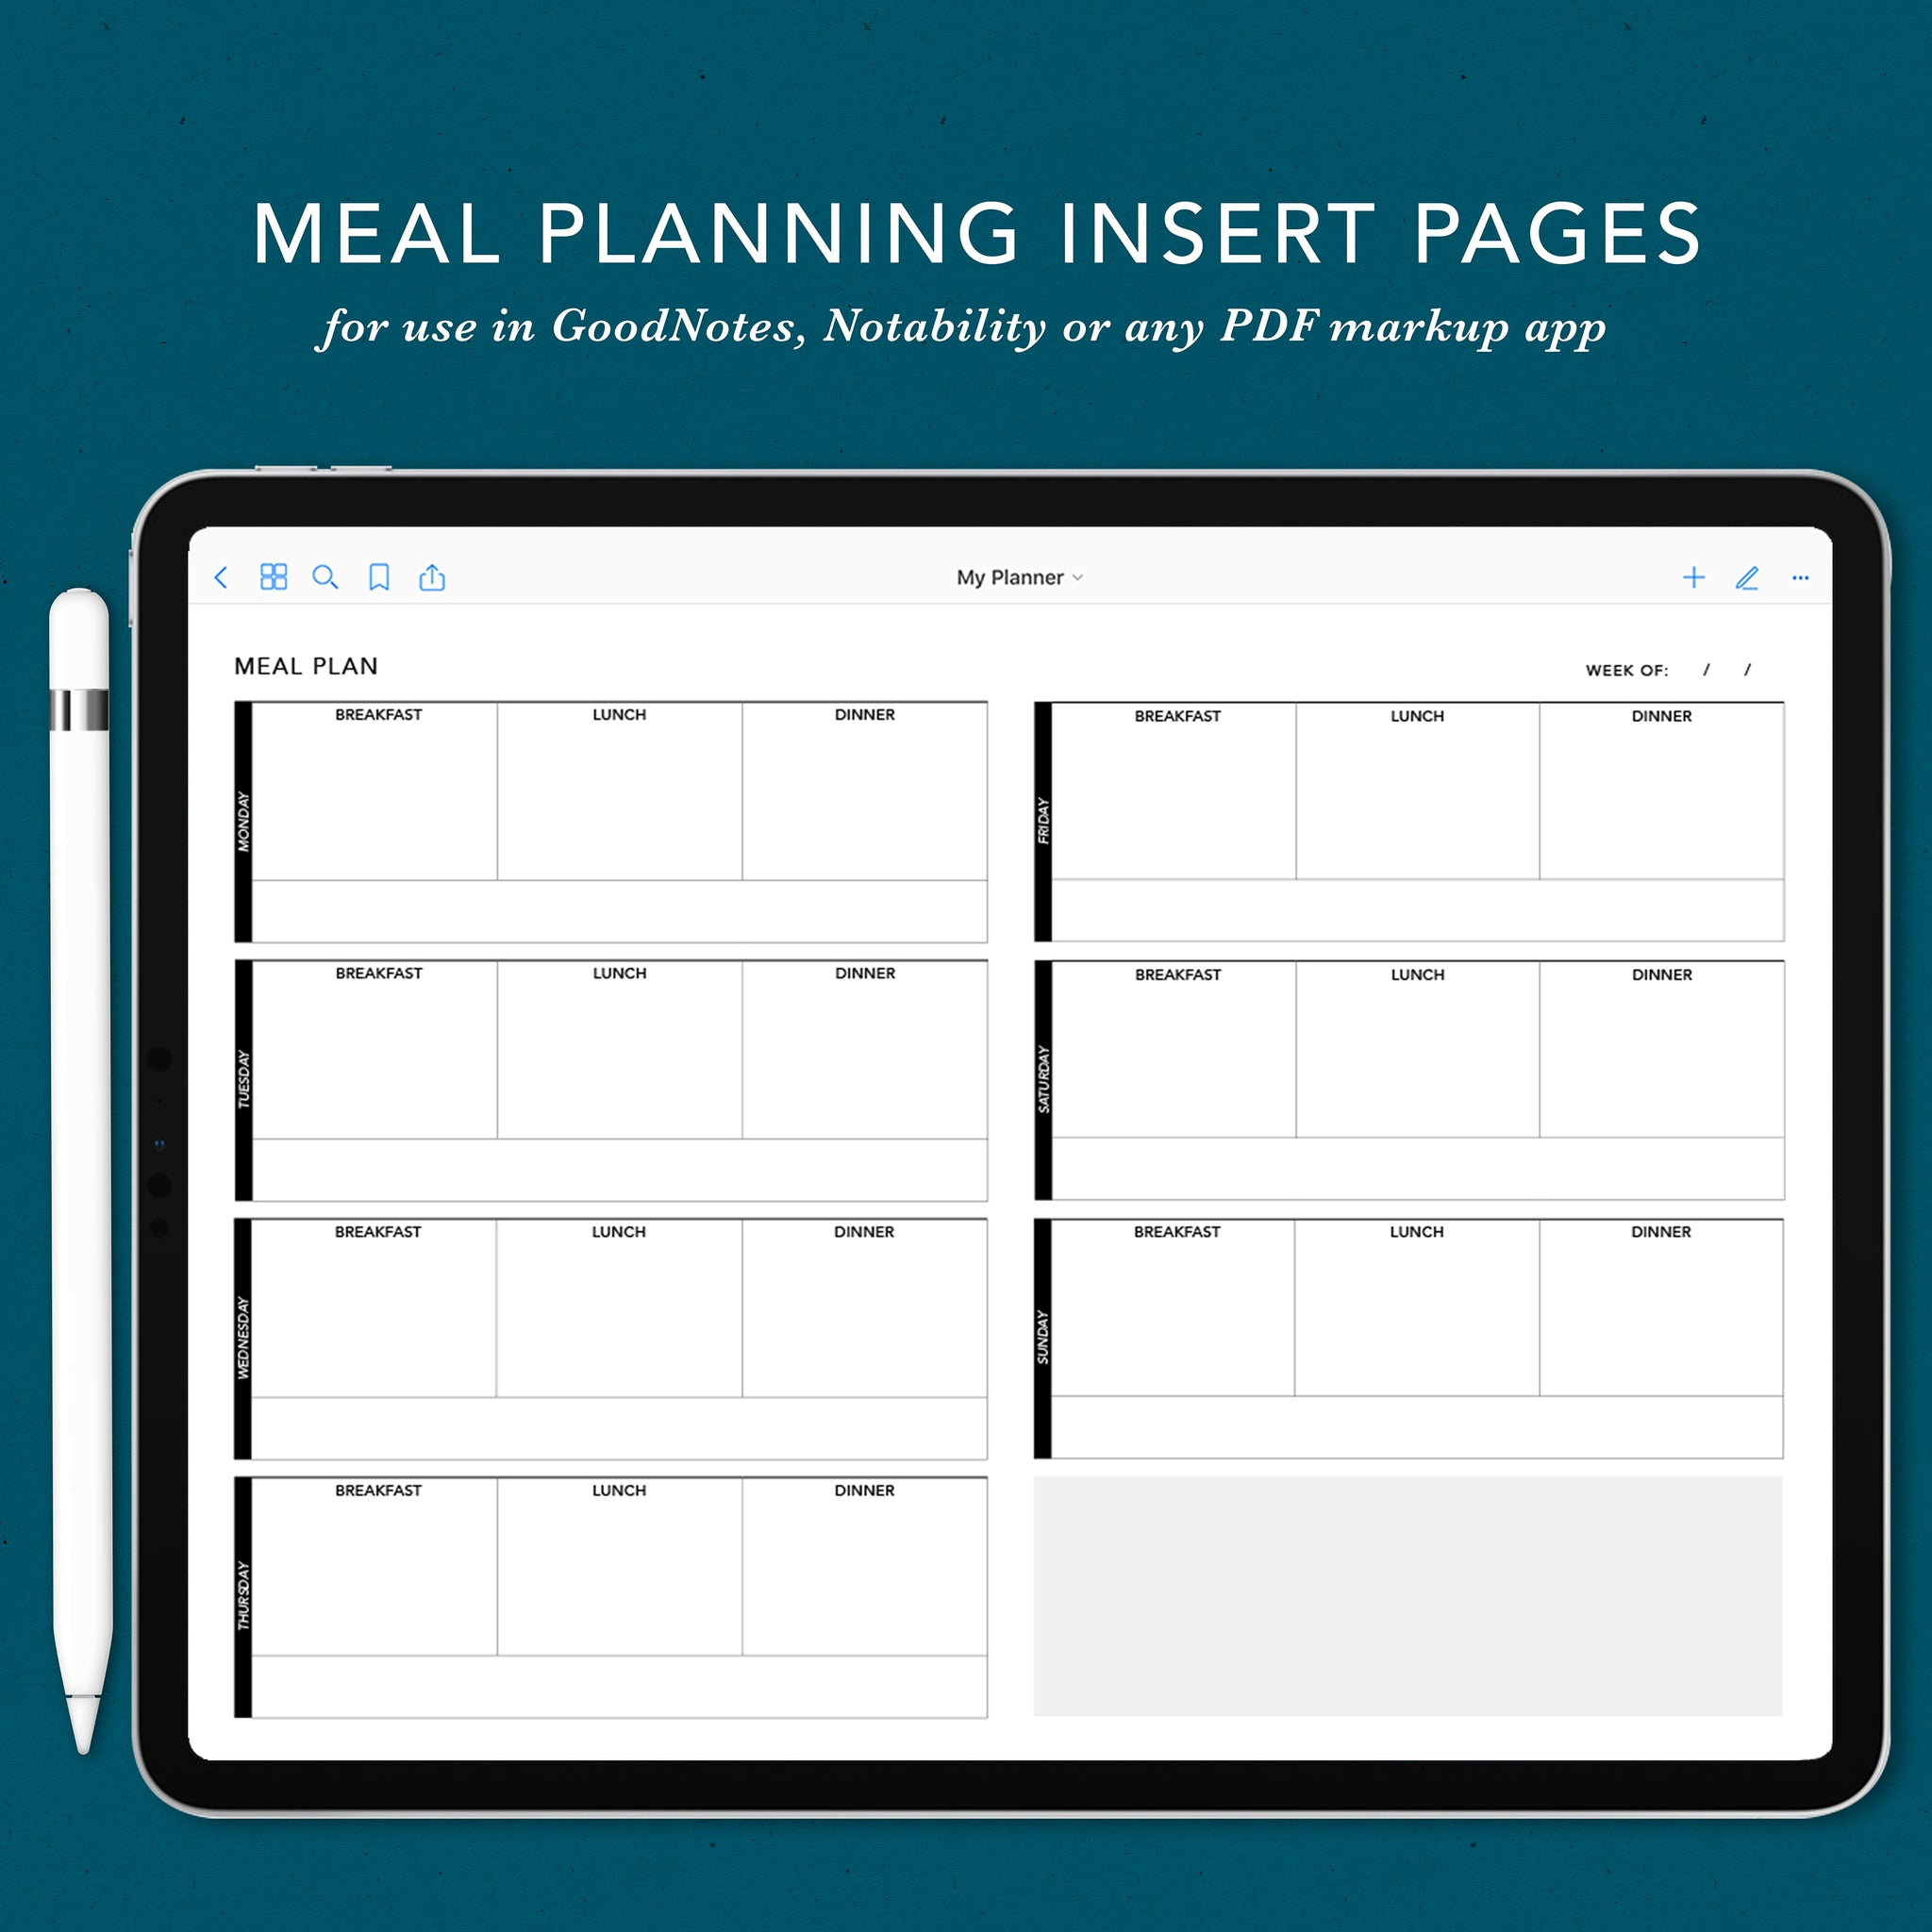 Meal Planning Insert Pages for Digital Planning